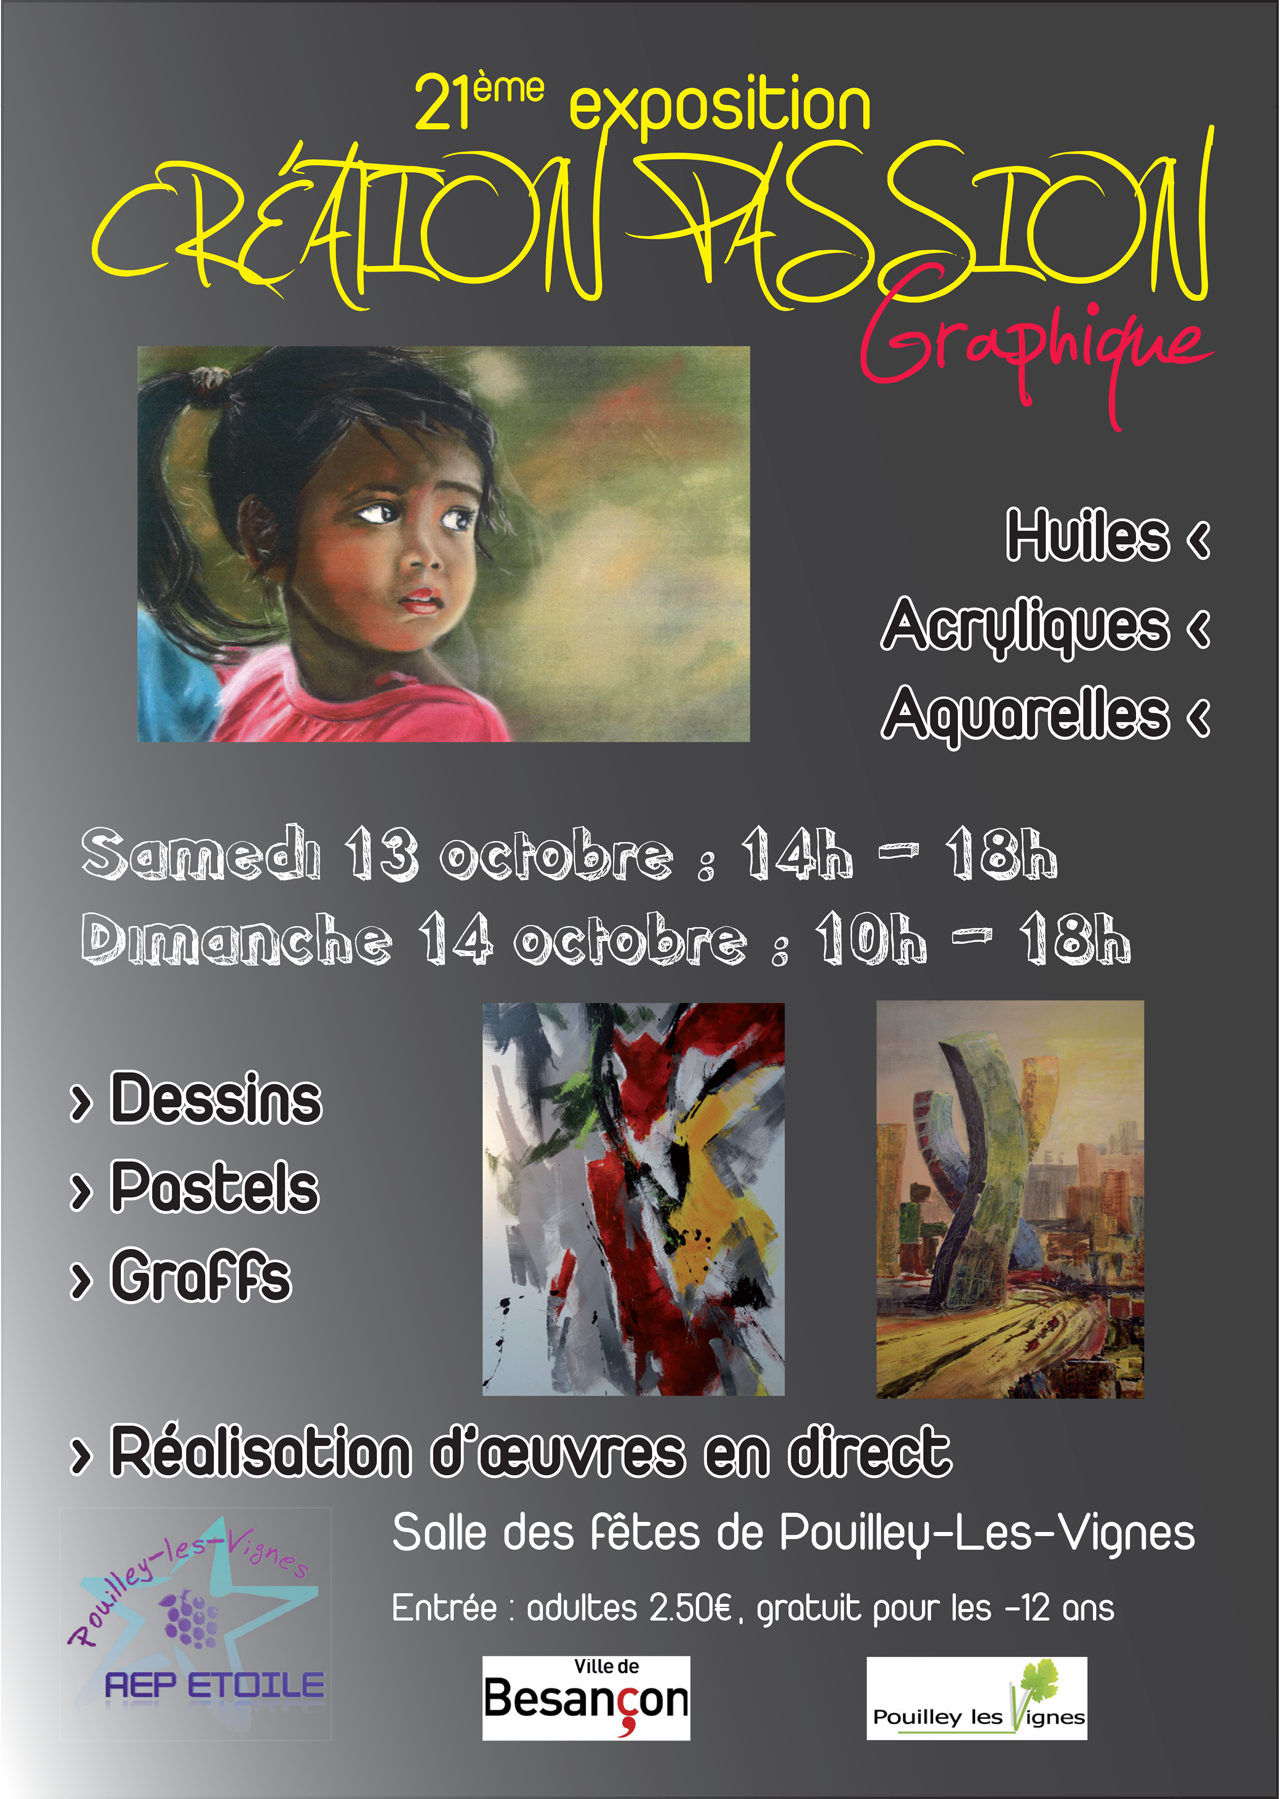 2012-09 - Affiche exposition Creation Passion Graphique